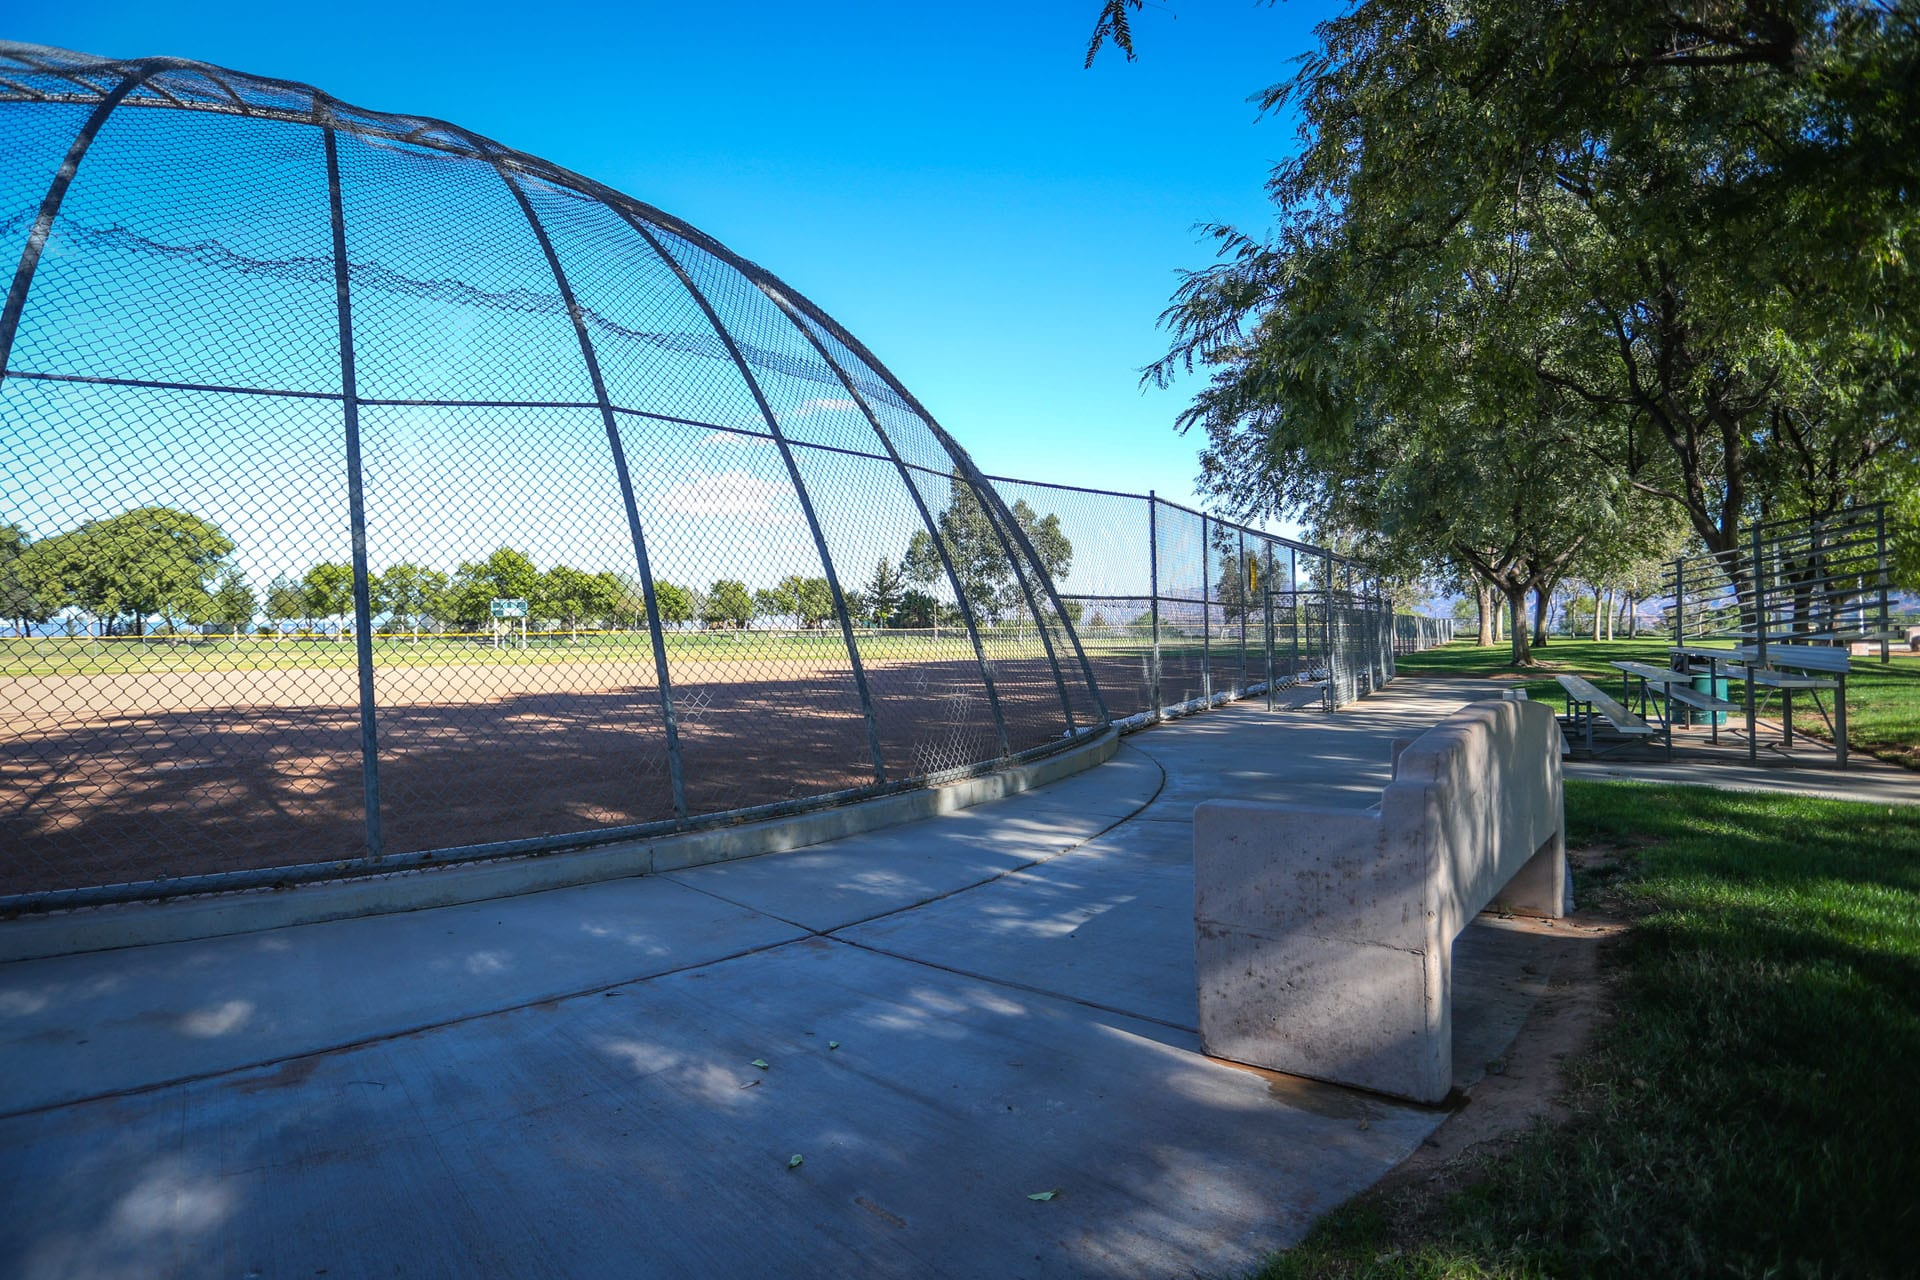 Baseball net with bench outside